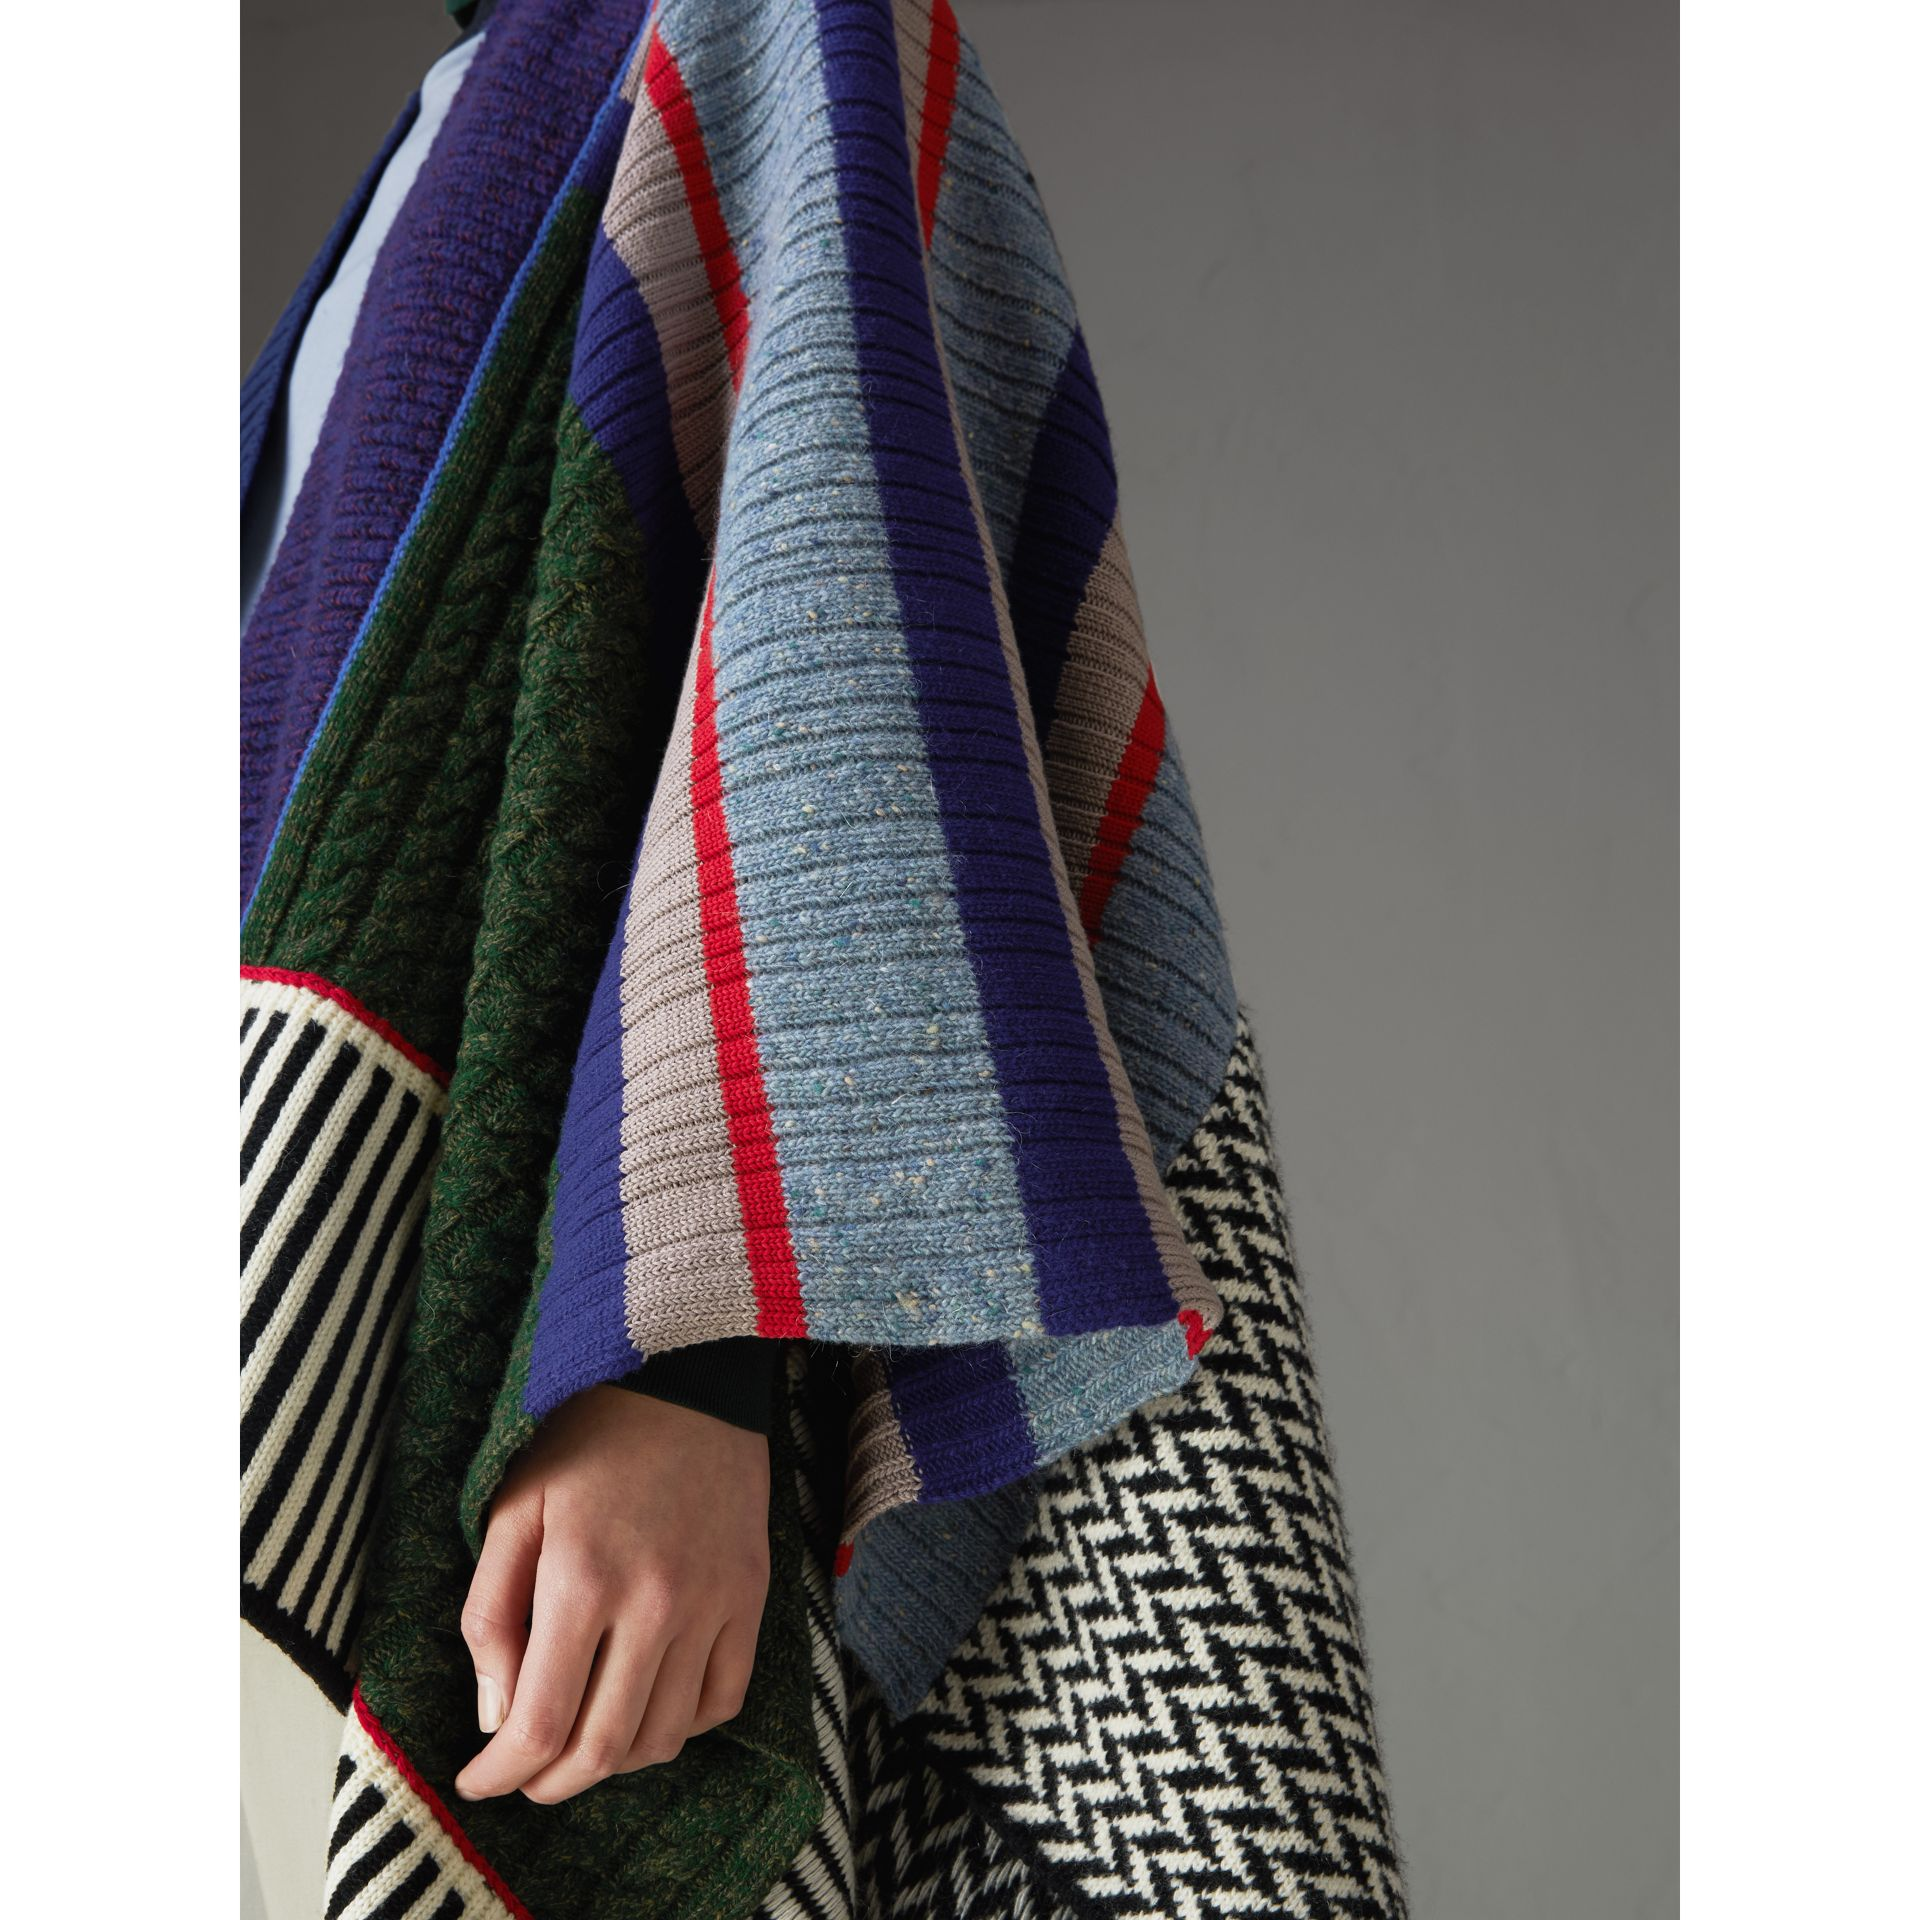 Wool Cashmere Blend Patchwork Poncho in Multicolour - Women | Burberry - gallery image 1